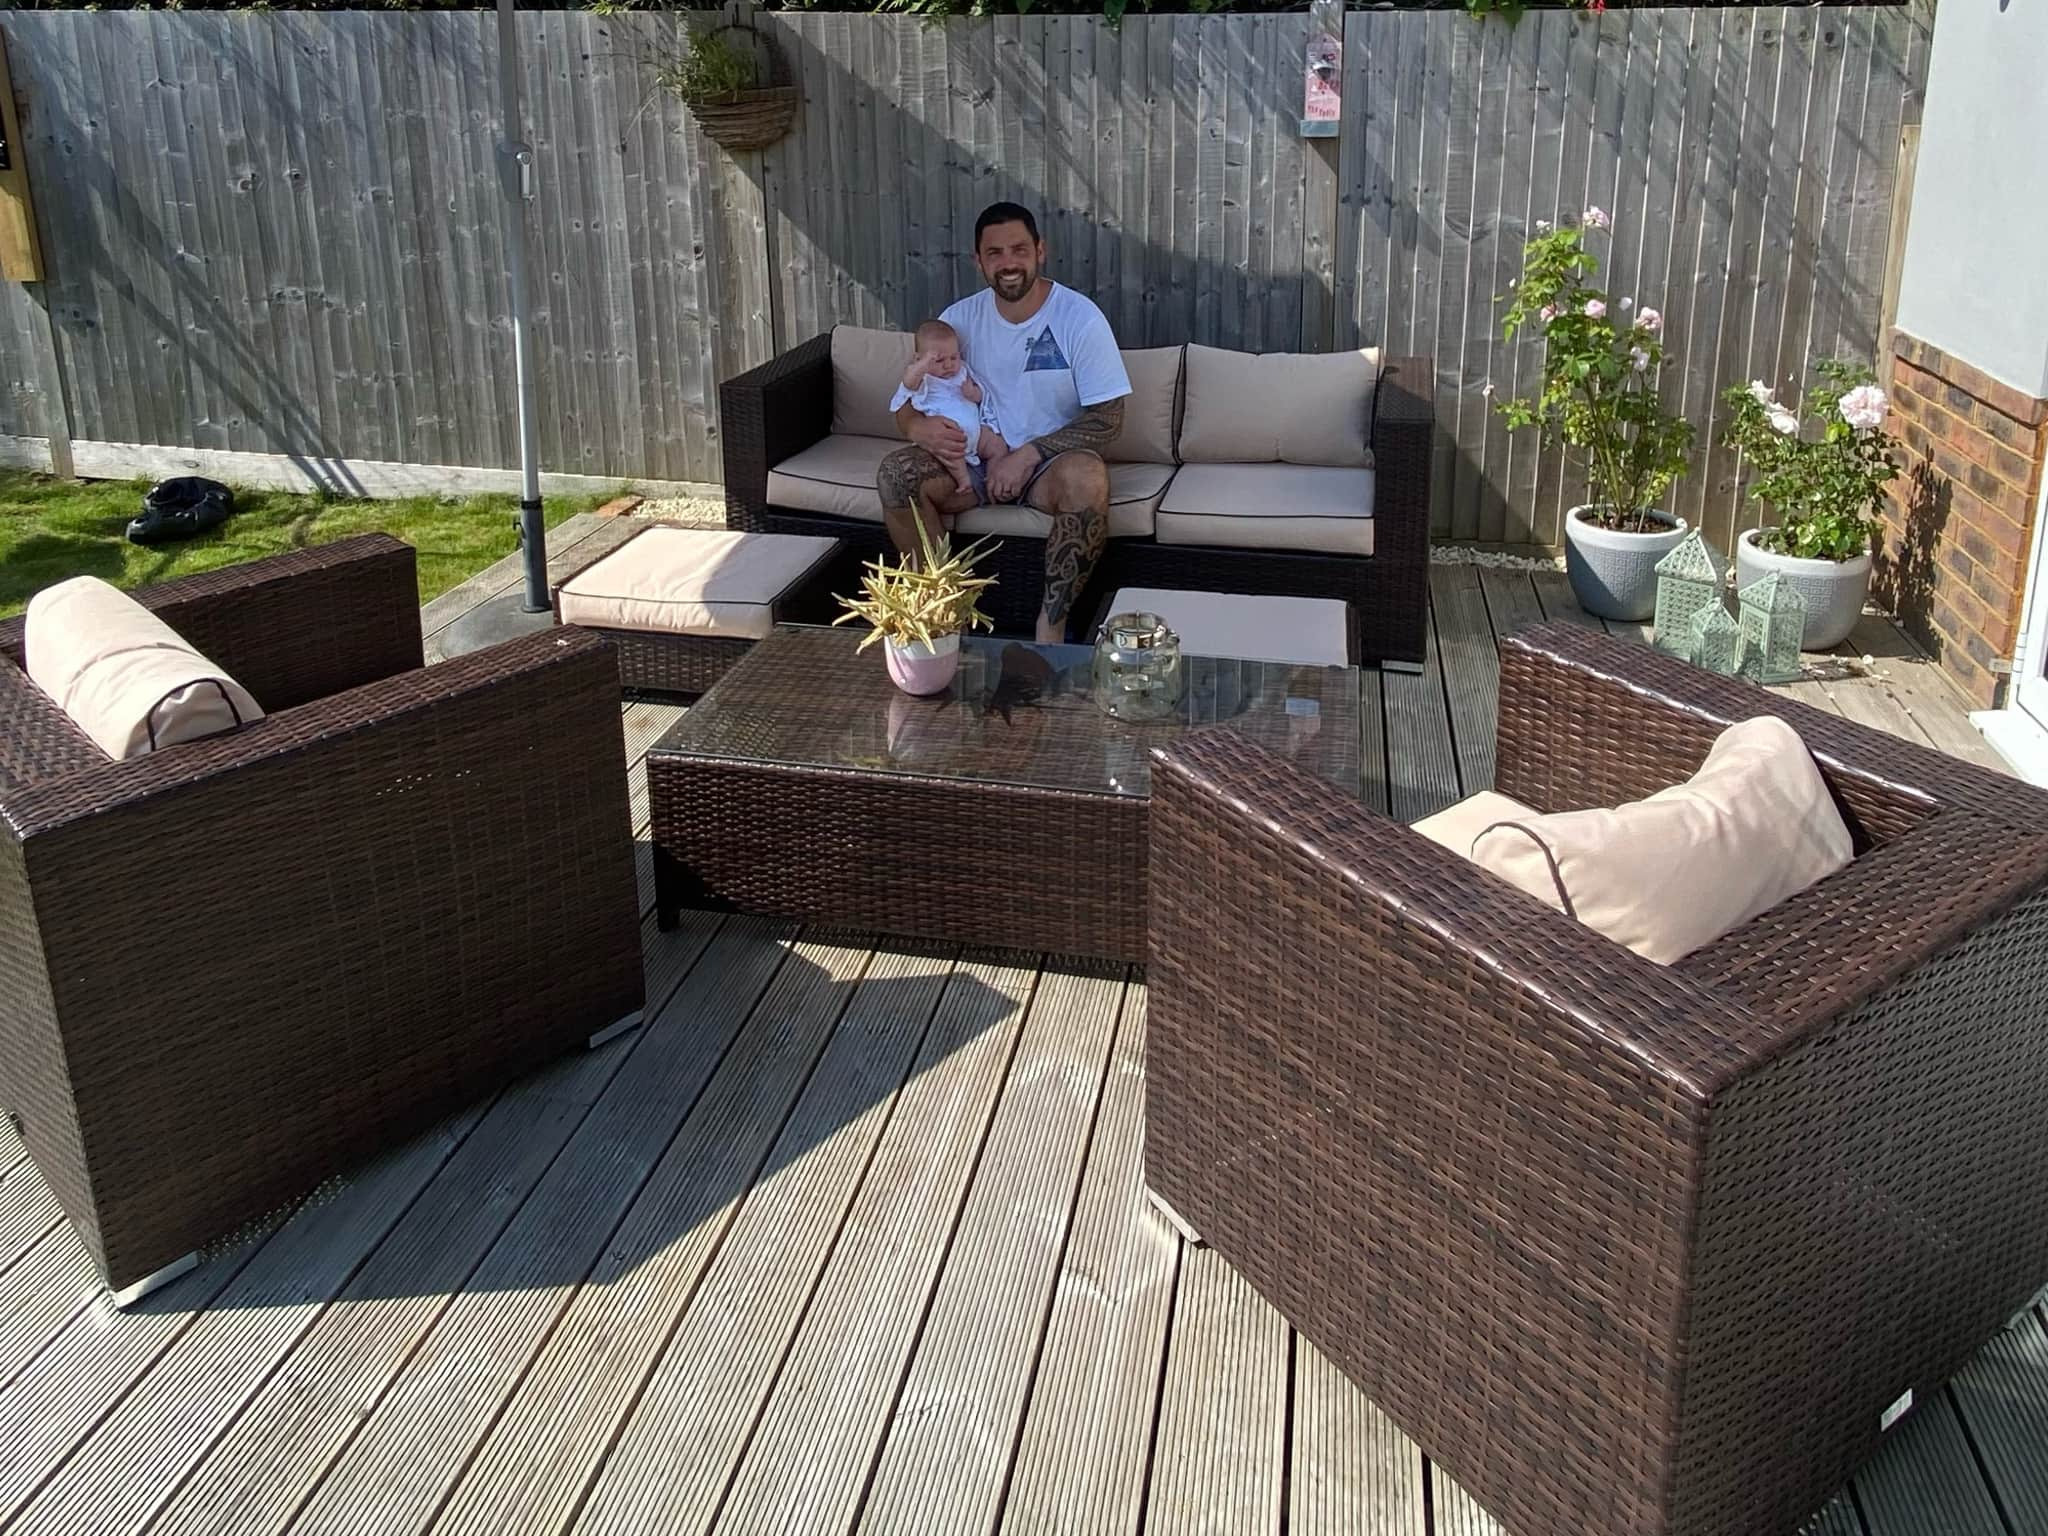 Winner Steven Mather of a Ascot 3 Seater Rattan Garden Sofa Set in Chocolate and Cream - 12th July